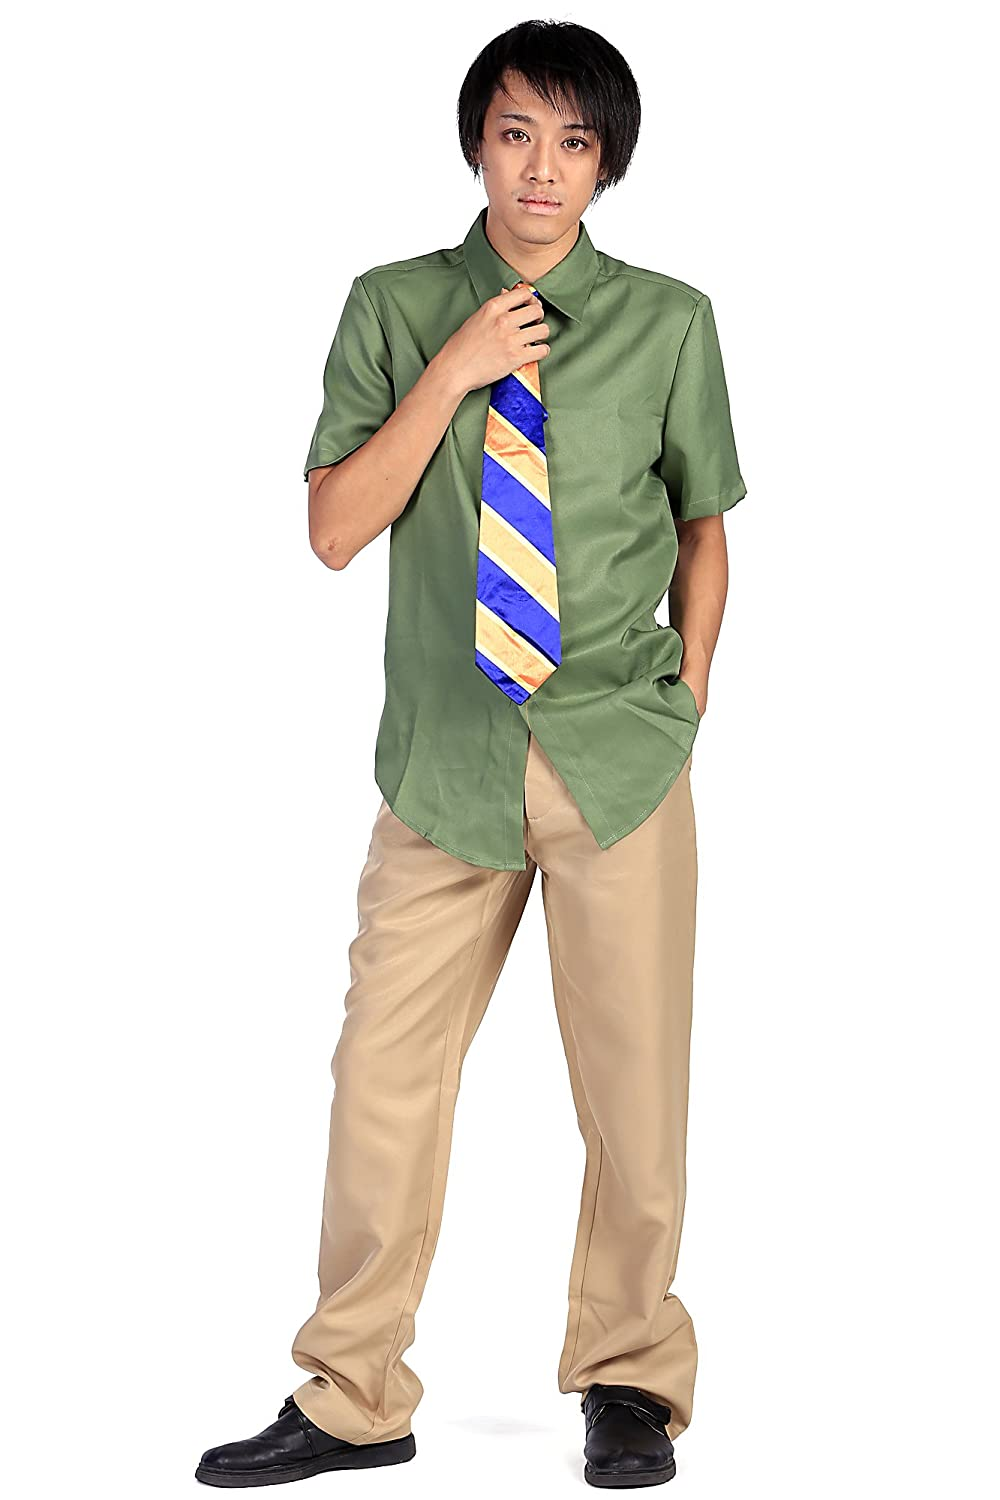 De-Cos Cosplay Costume DMV Officer Three-Toed Sloth Flash Outfit Set V1